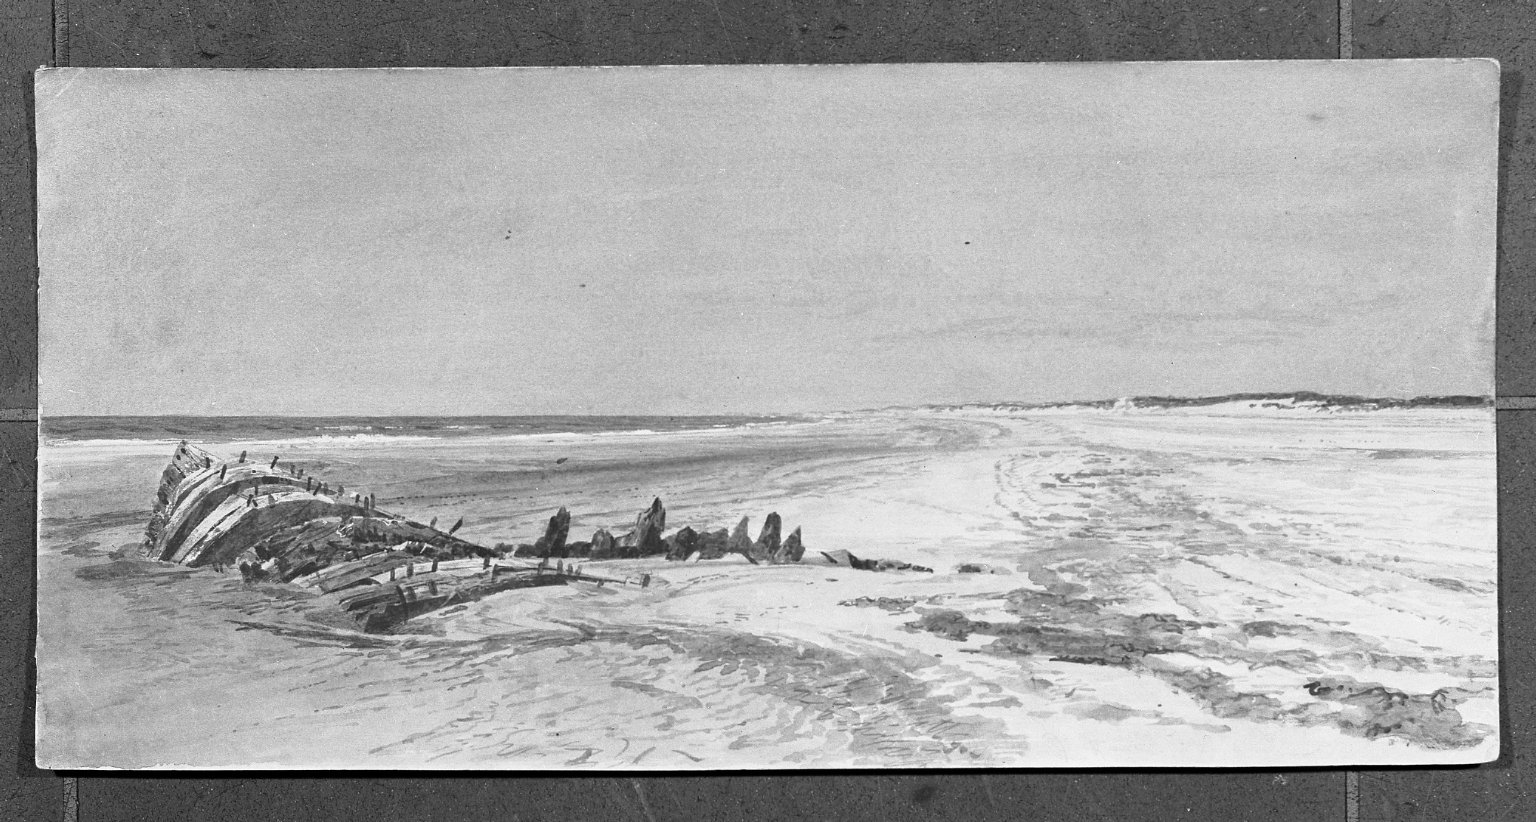 Brooklyn Museum: Beach Scene with Wreck